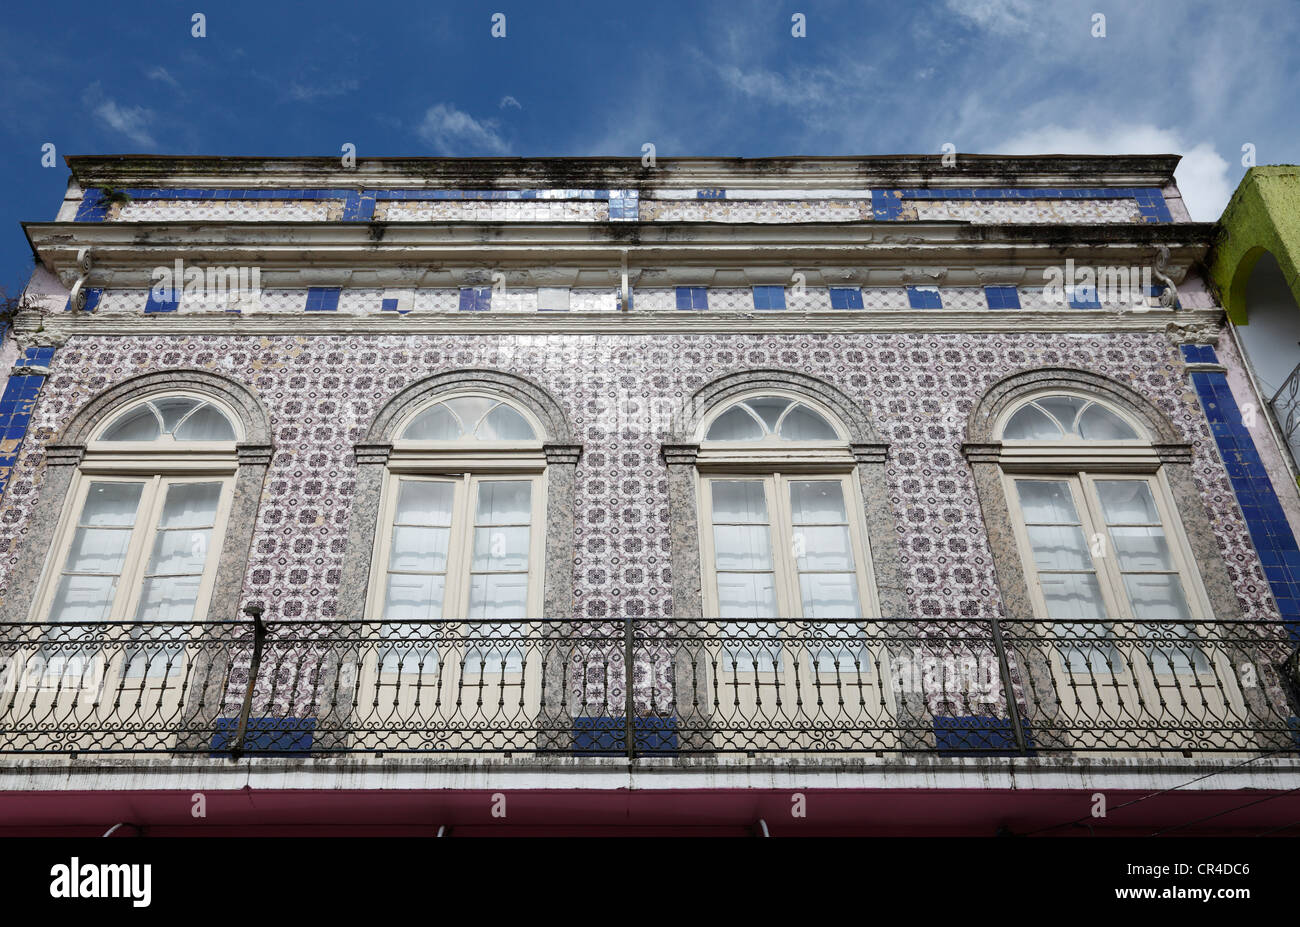 Historic building, facade with azulejos ceramic tiles, old town of ...